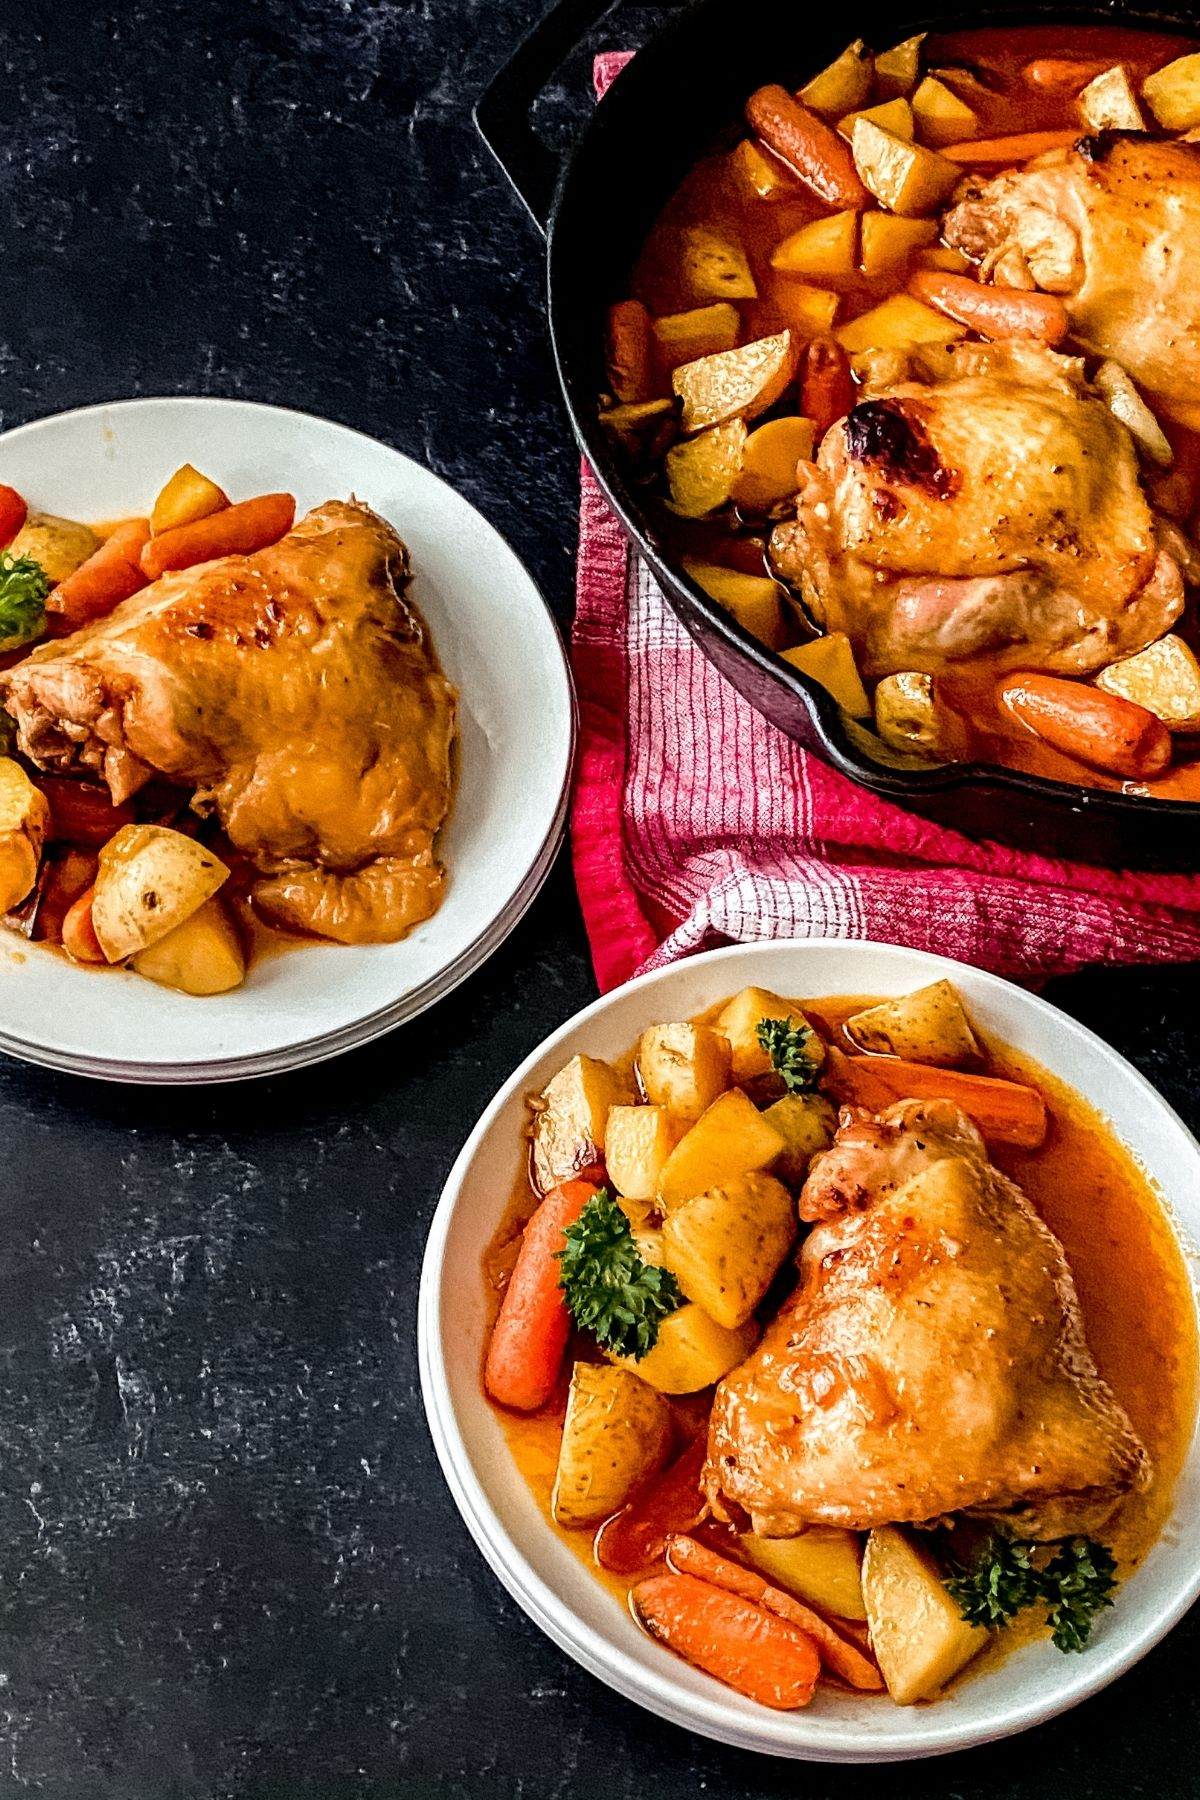 Cast iron skillet on red napkin filled with chicken and vegetables net to white plates of food